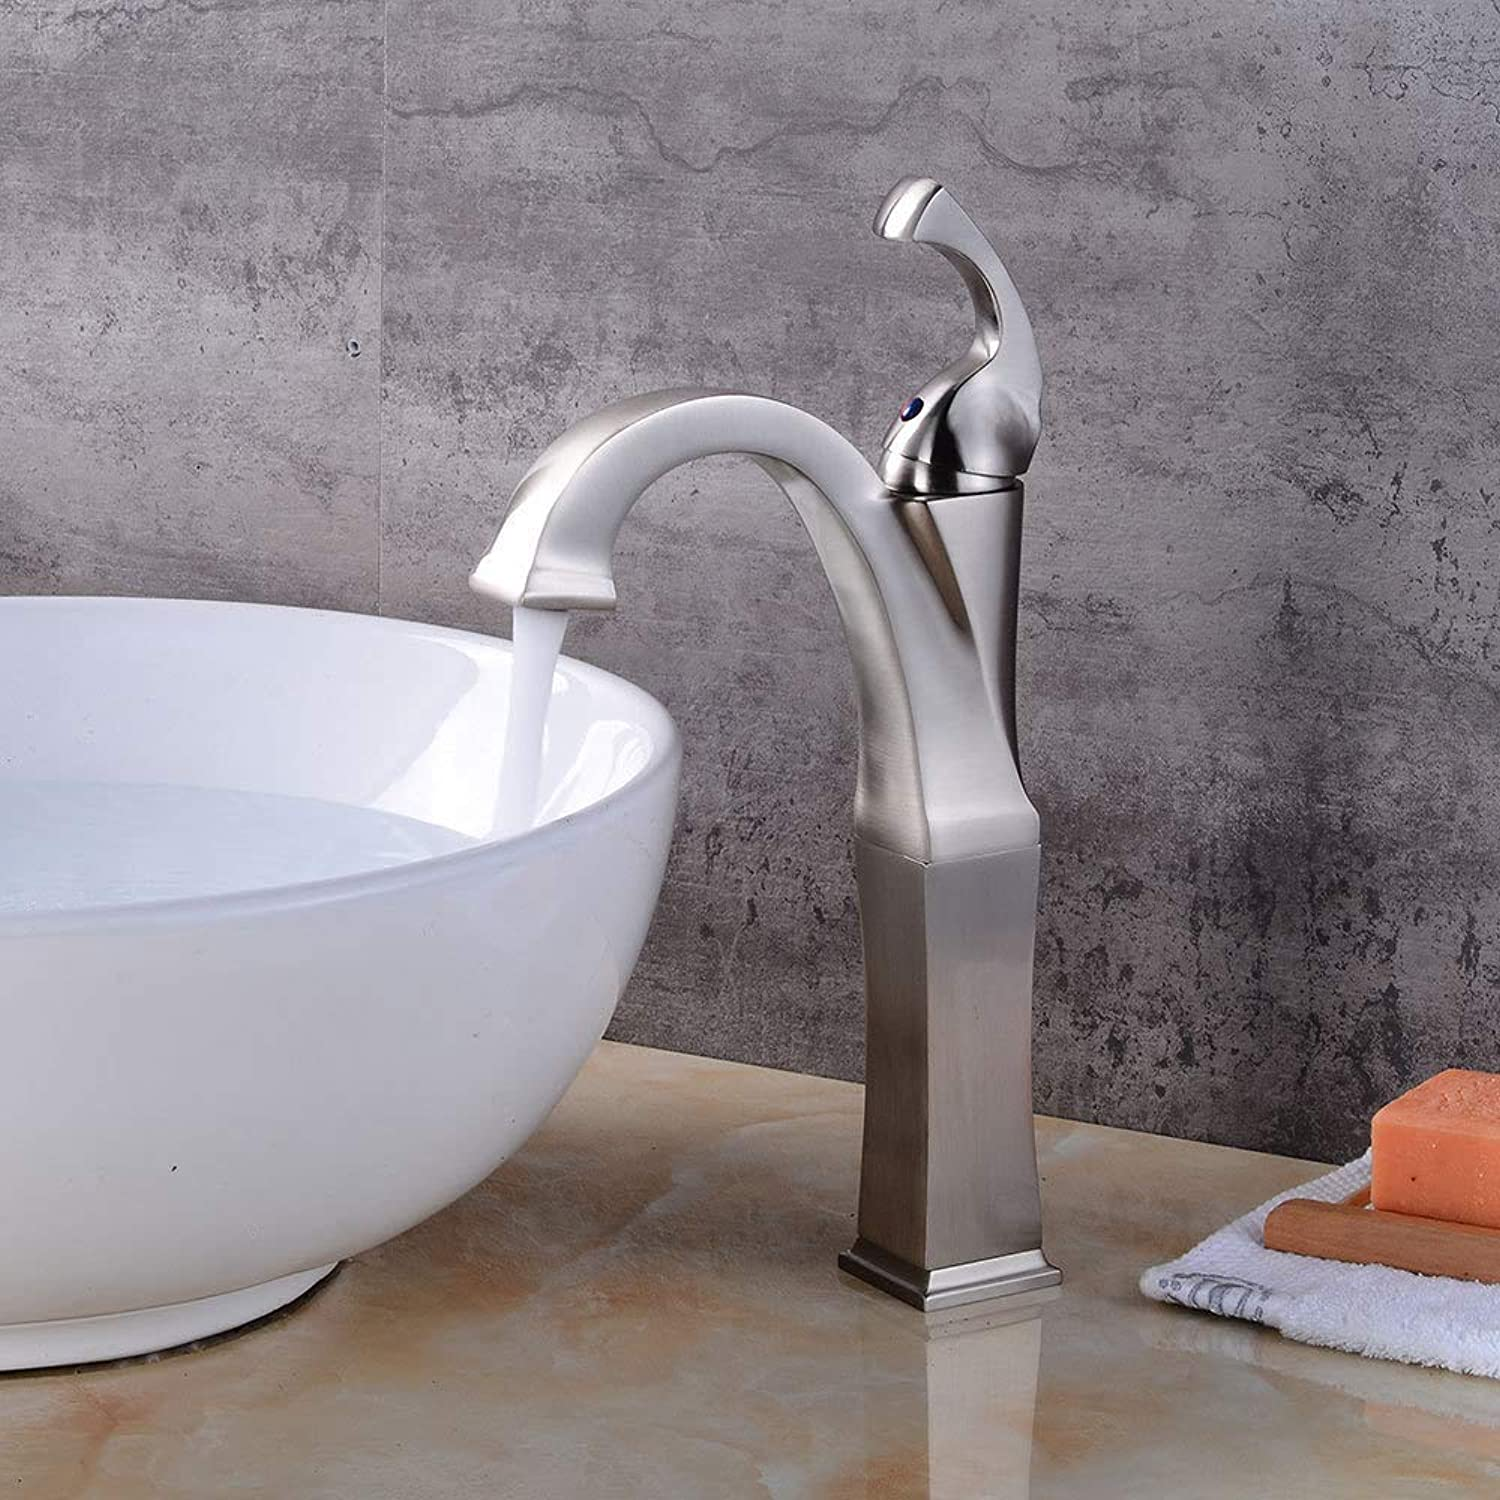 Single Handle Faucet,Deck Mounted Brushed Nickel Basin Faucet Single Handle Creative Counter top Hot Cold Faucet.